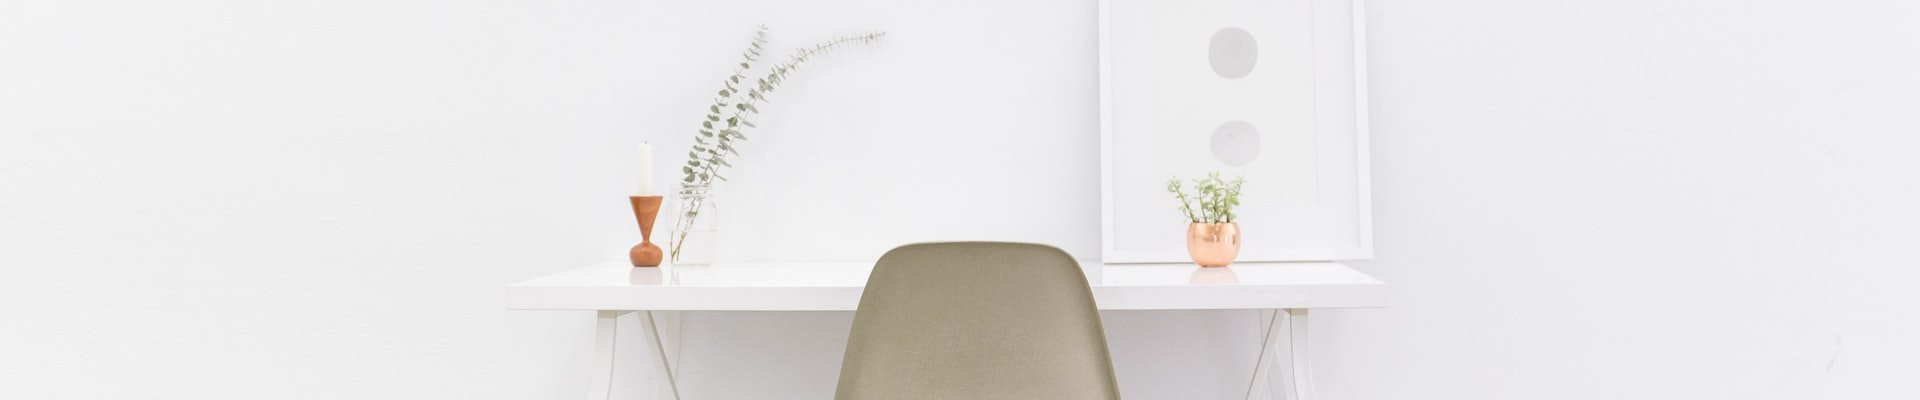 A white chair and desk in front of a wall